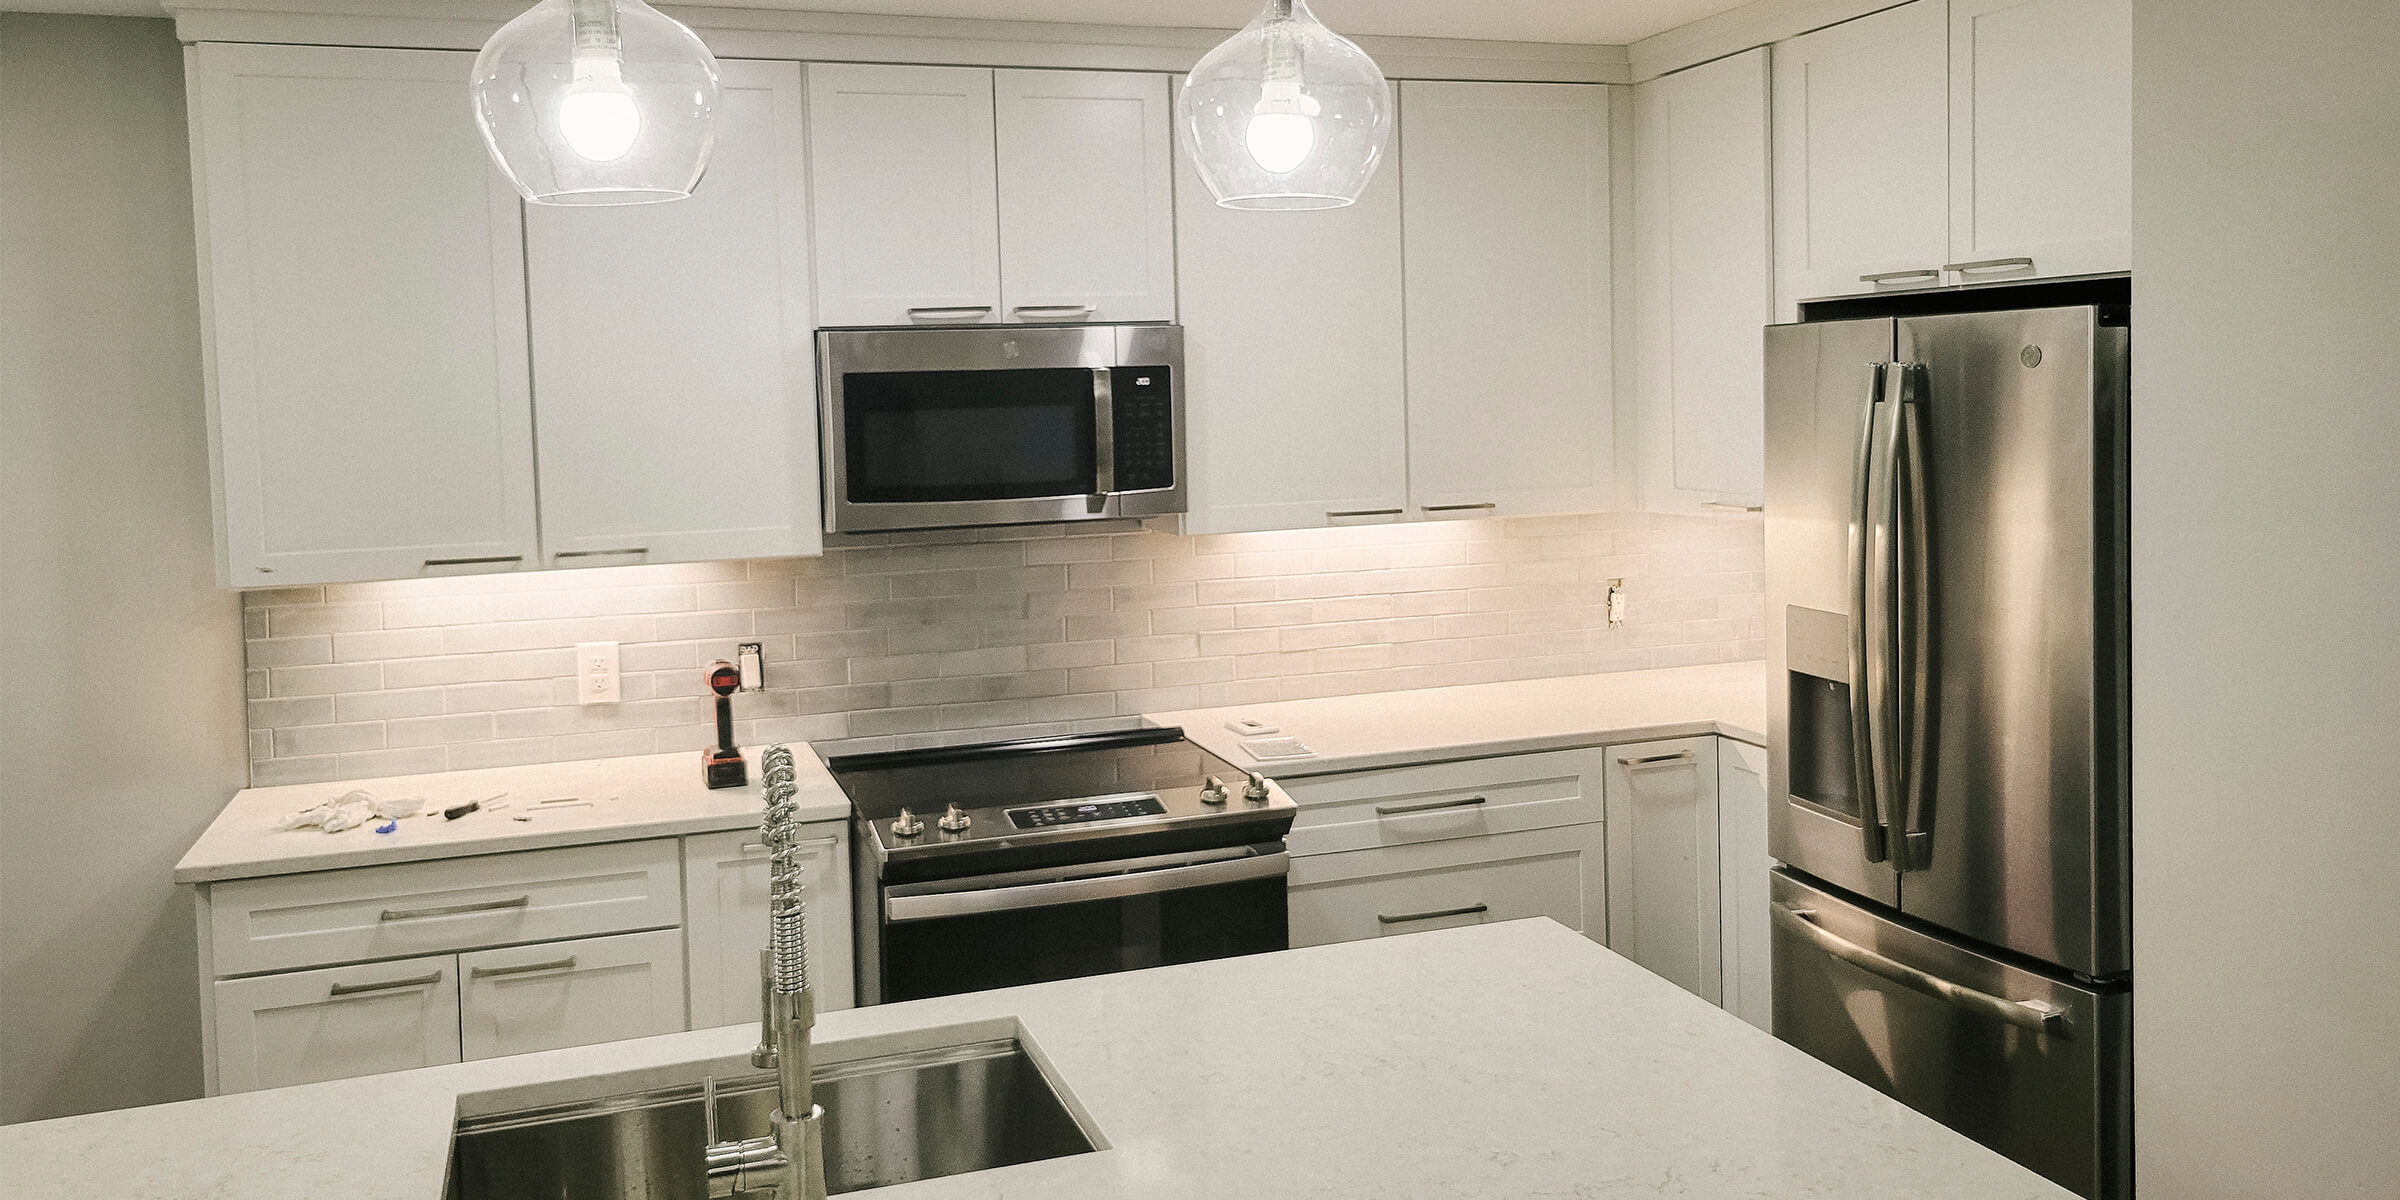 Downtown Indianapolis Kitchen Remodel - view of the kitchen